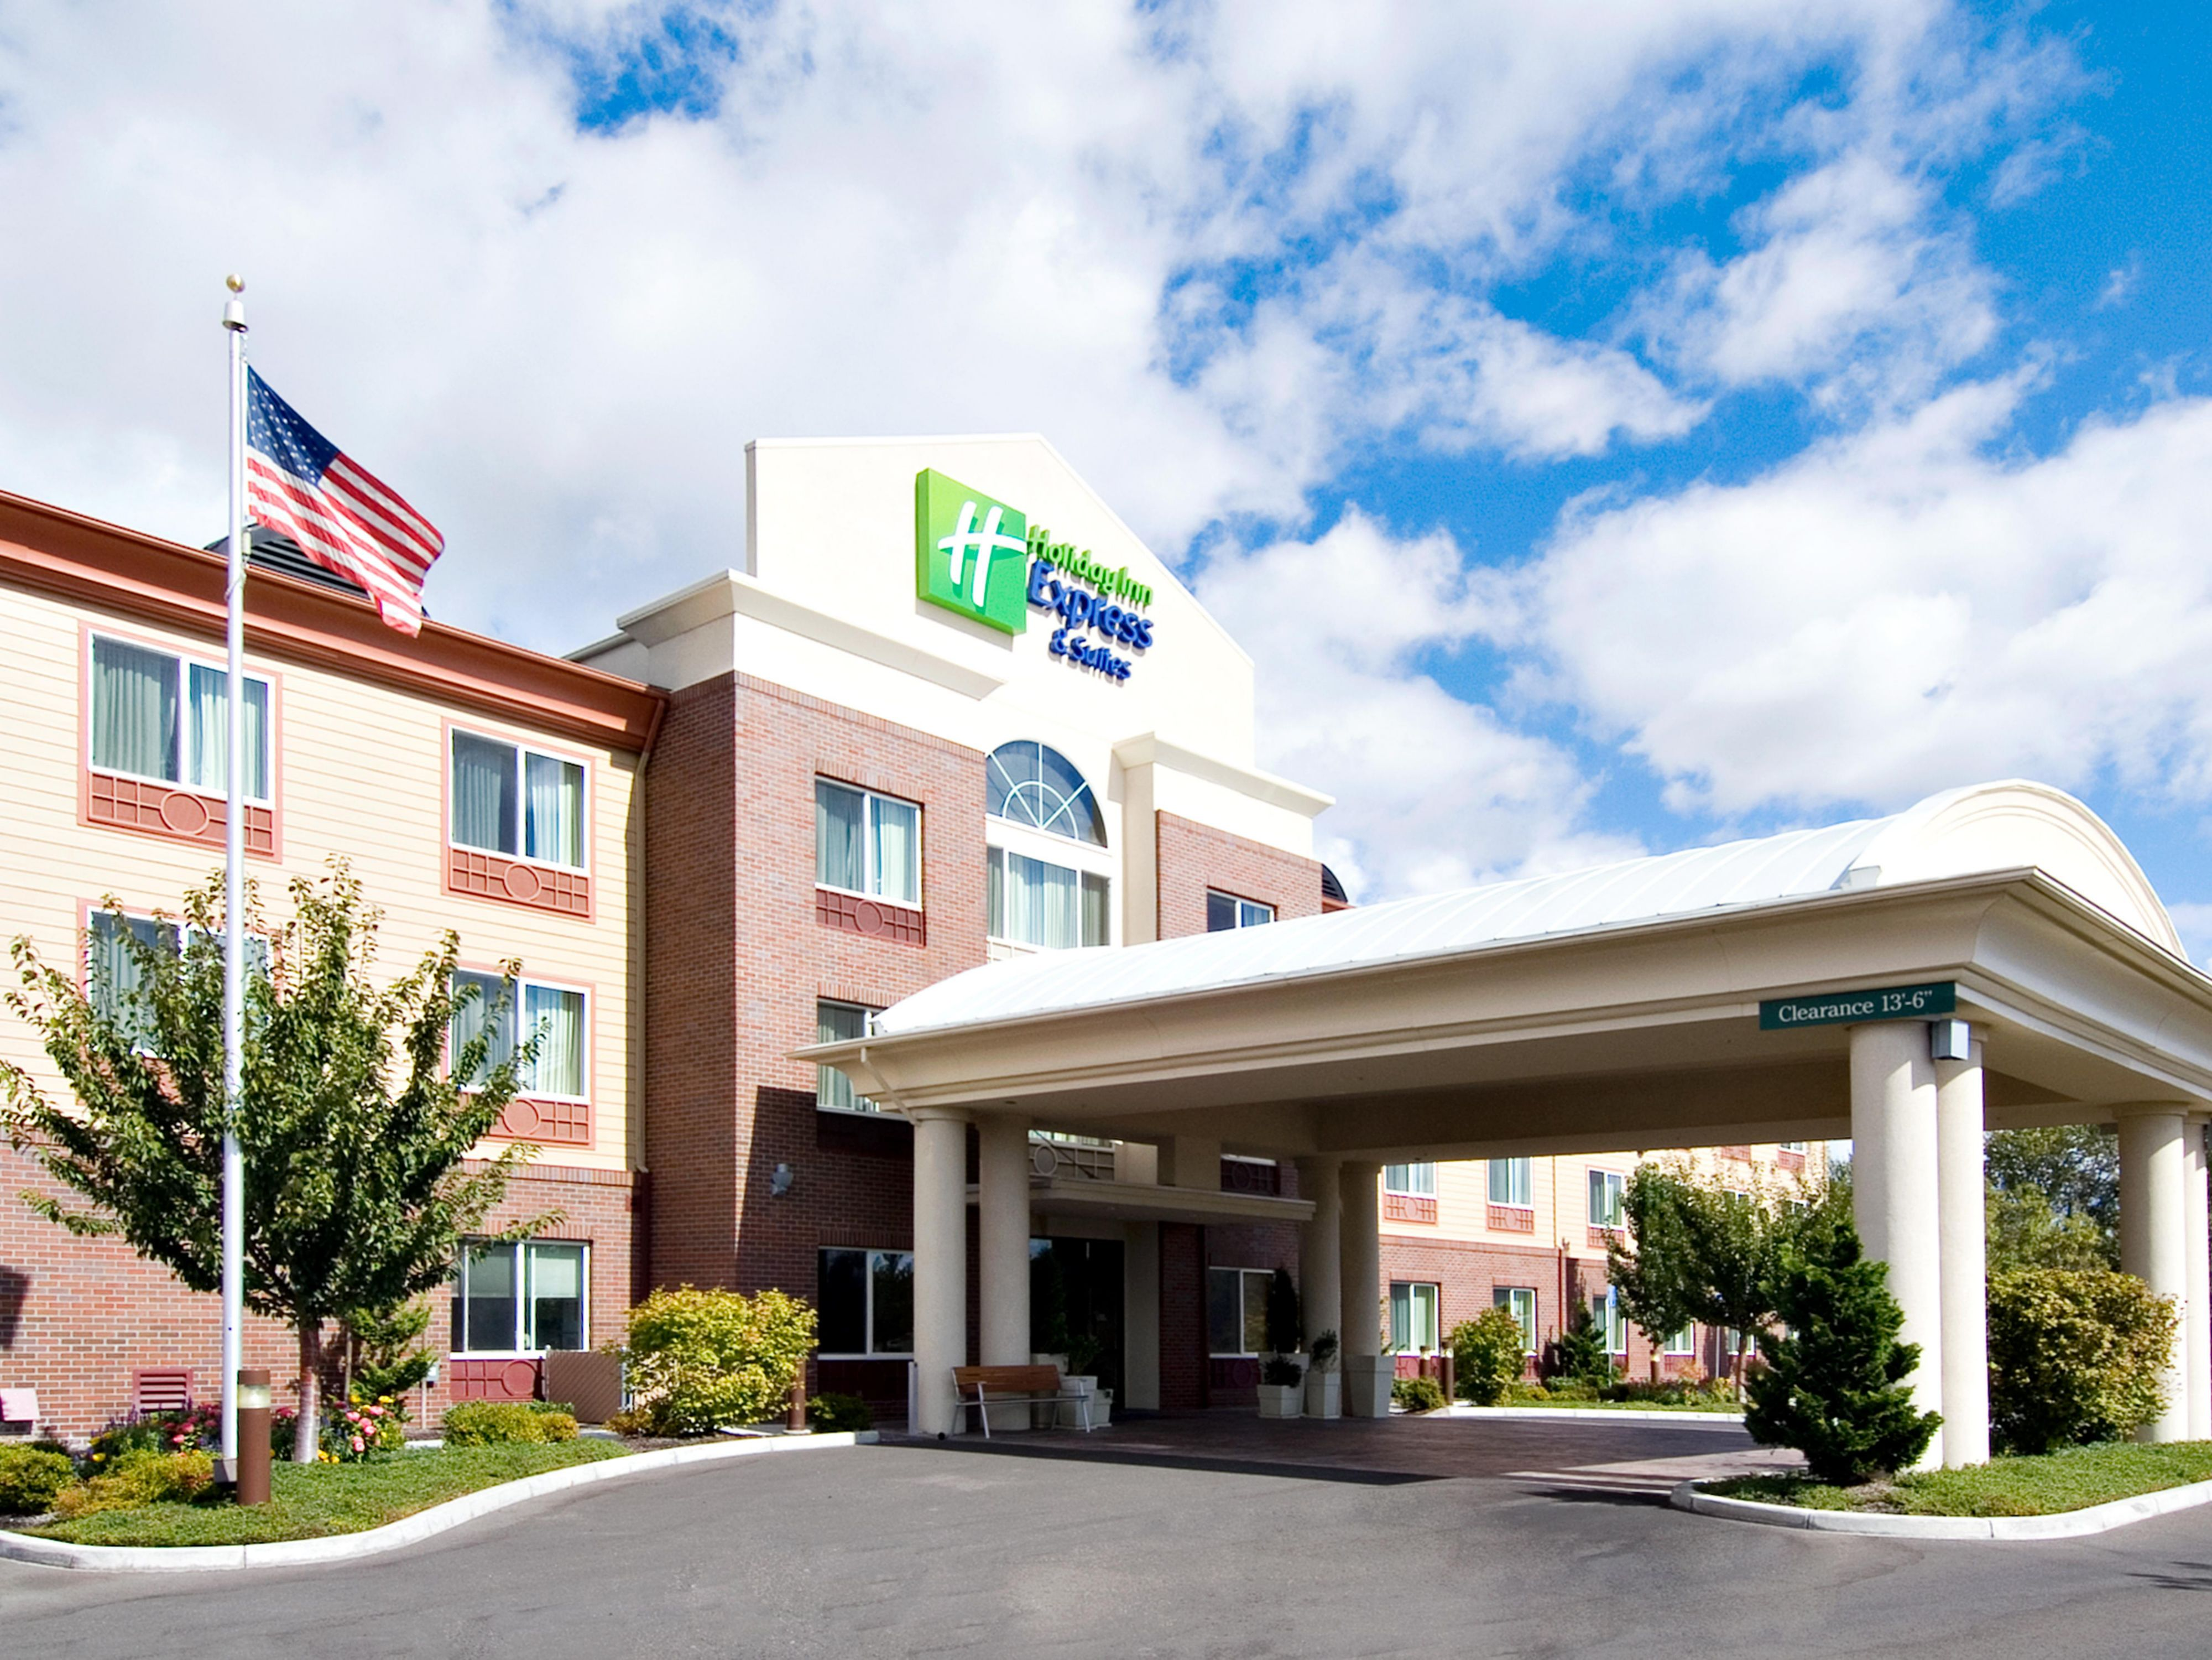 Holiday Inn Express Medford/Central Point, OR